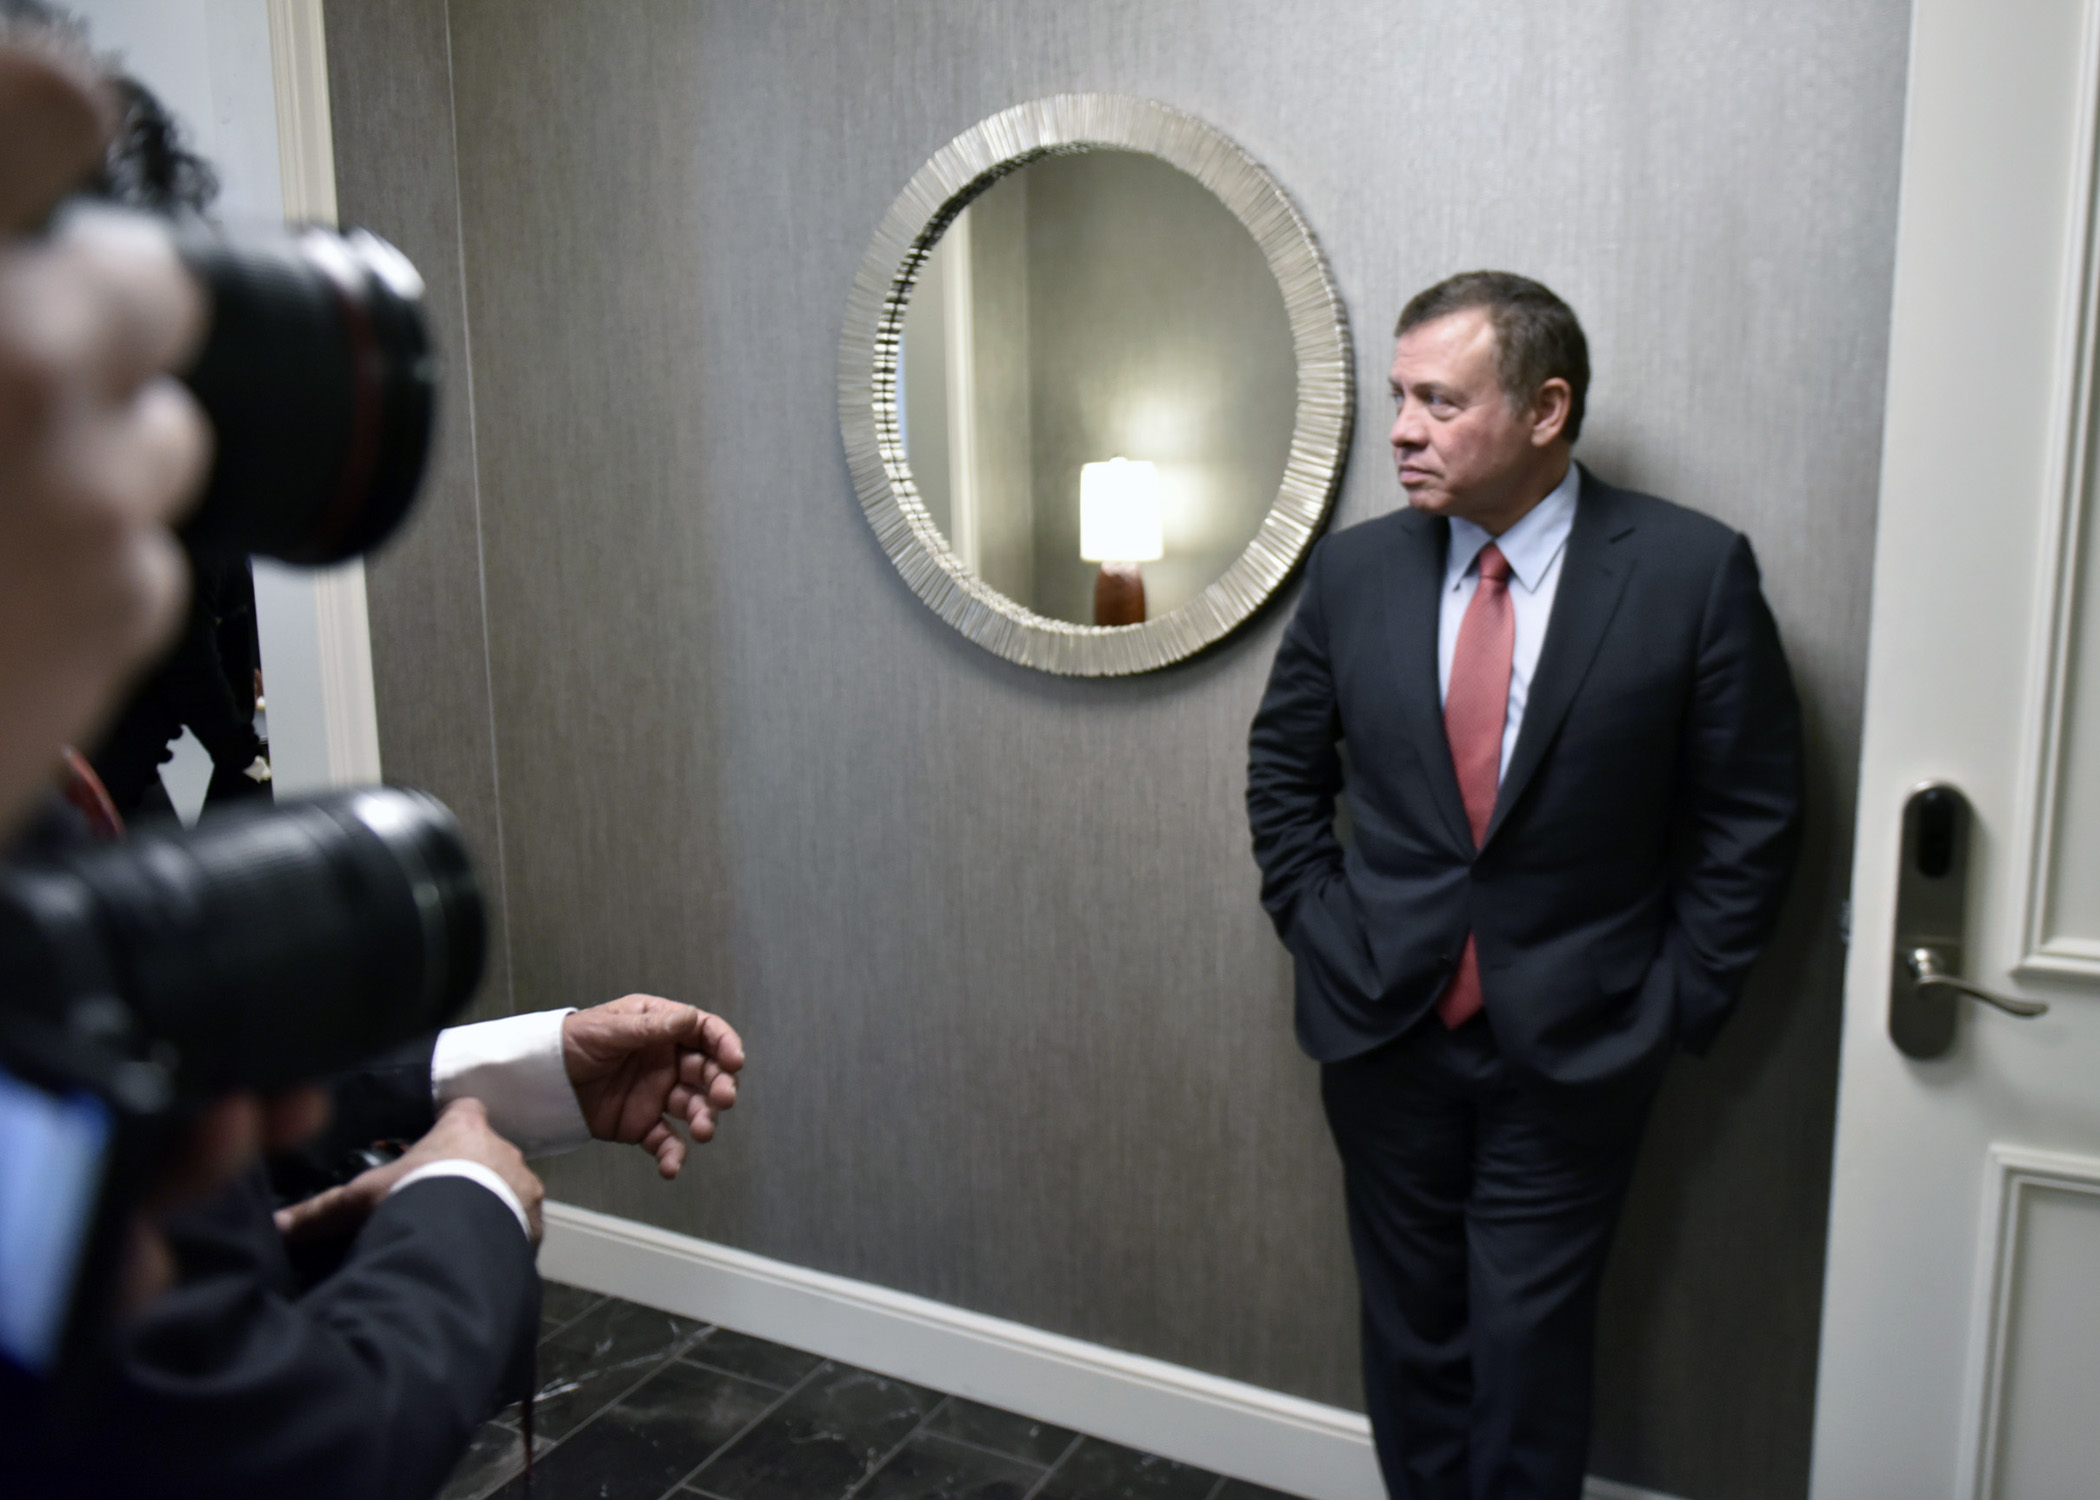 Jordanian King Abdullah II visited top U.S. officials to discuss the ongoing conflicts in the Middle East. (Wikimedia Commons)